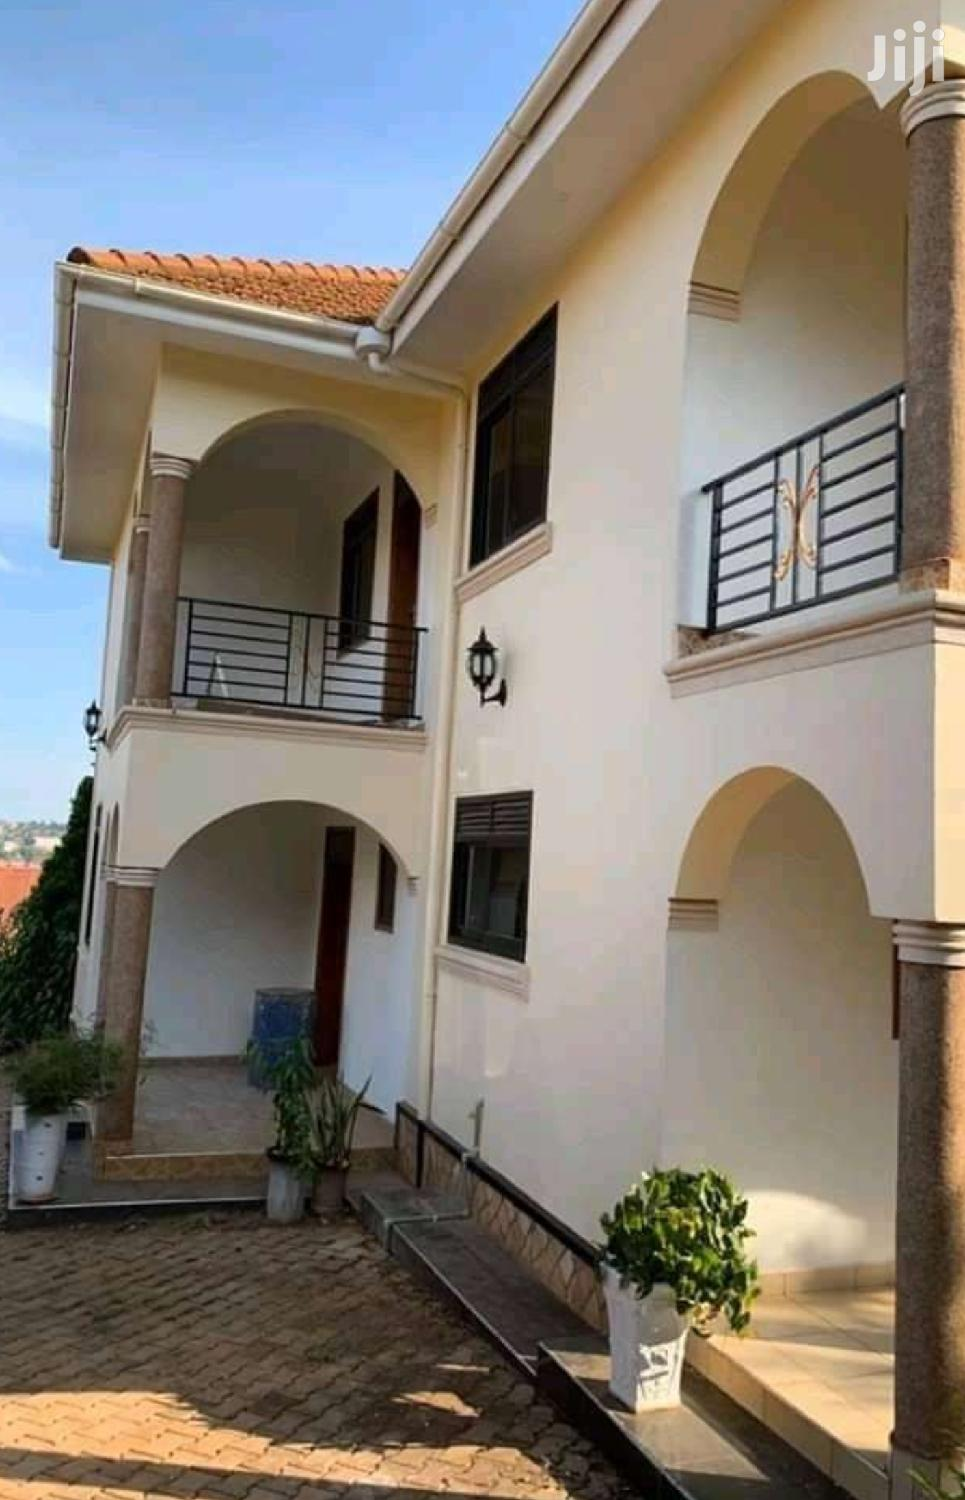 Ntinda 4 Bedrooms Duplex Stand Alone For Rent